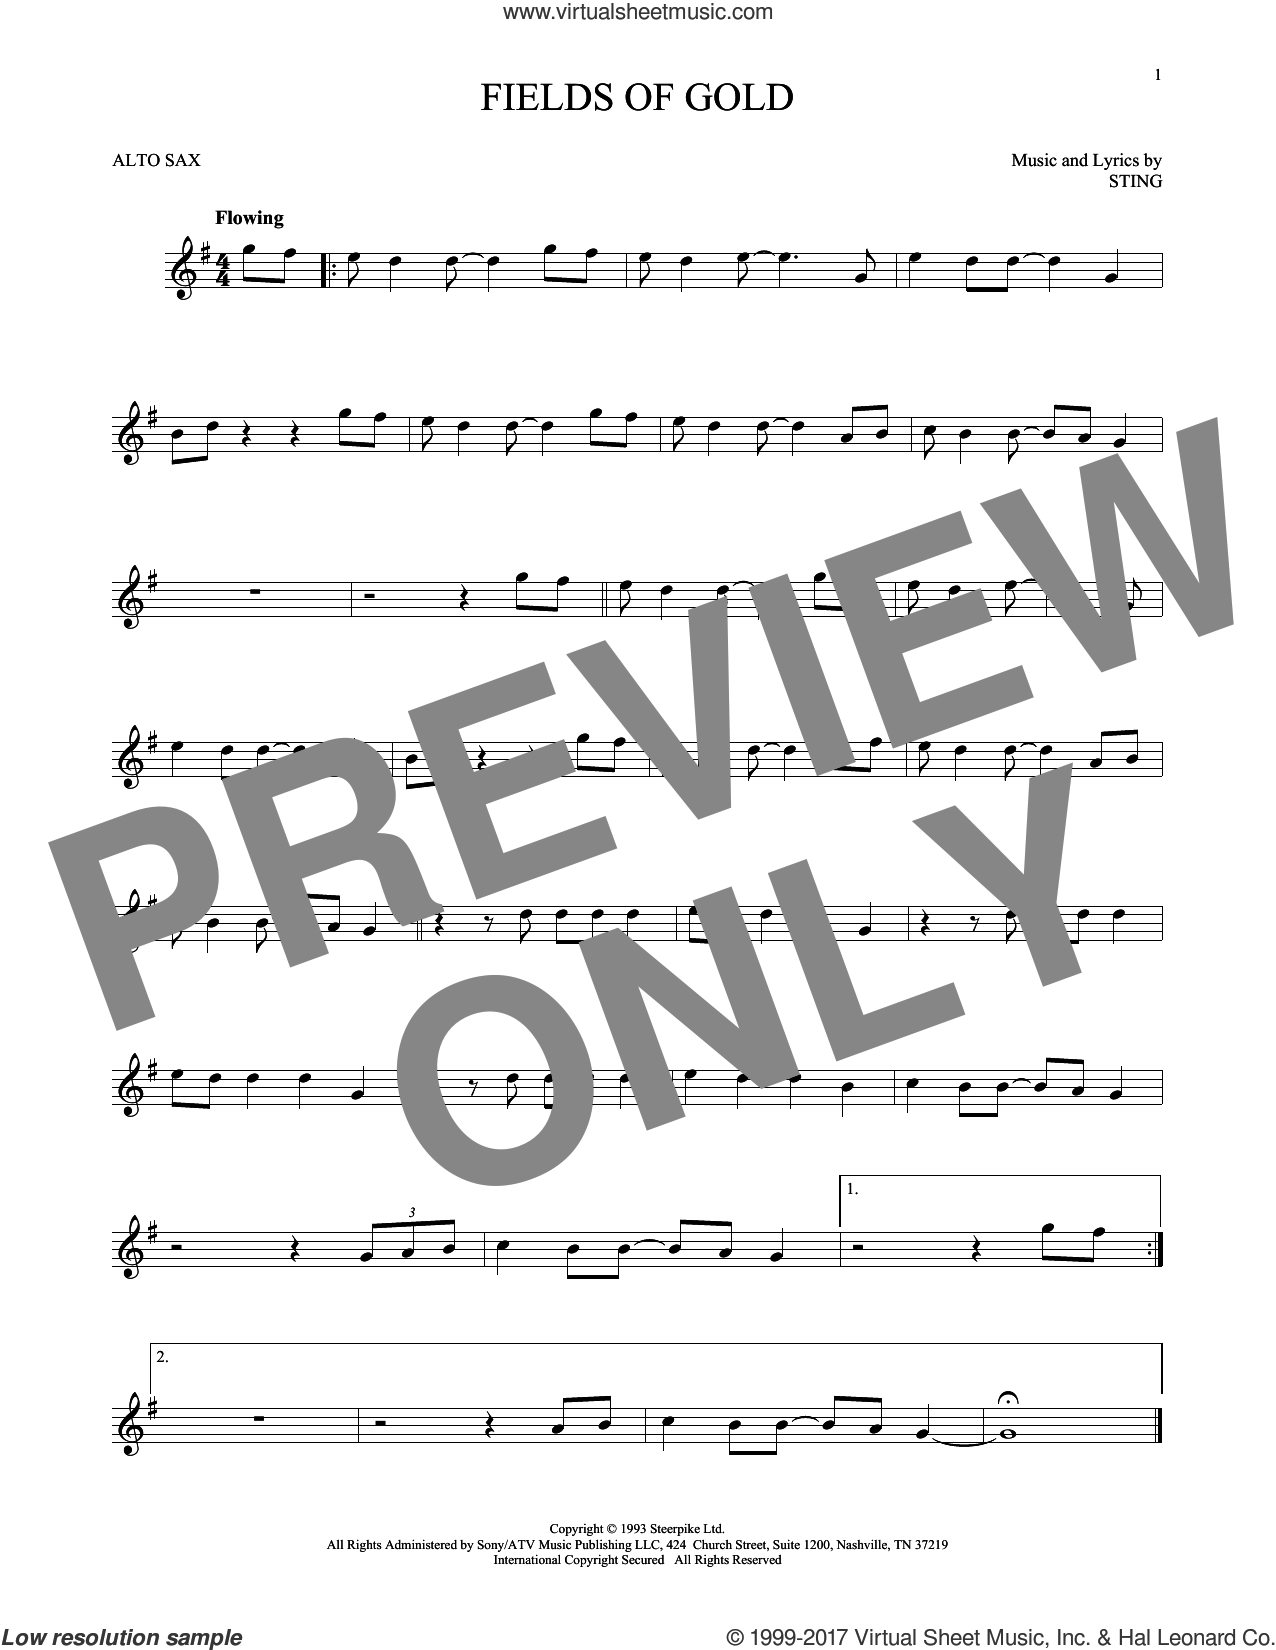 Fields Of Gold sheet music for alto saxophone solo by Sting, intermediate skill level